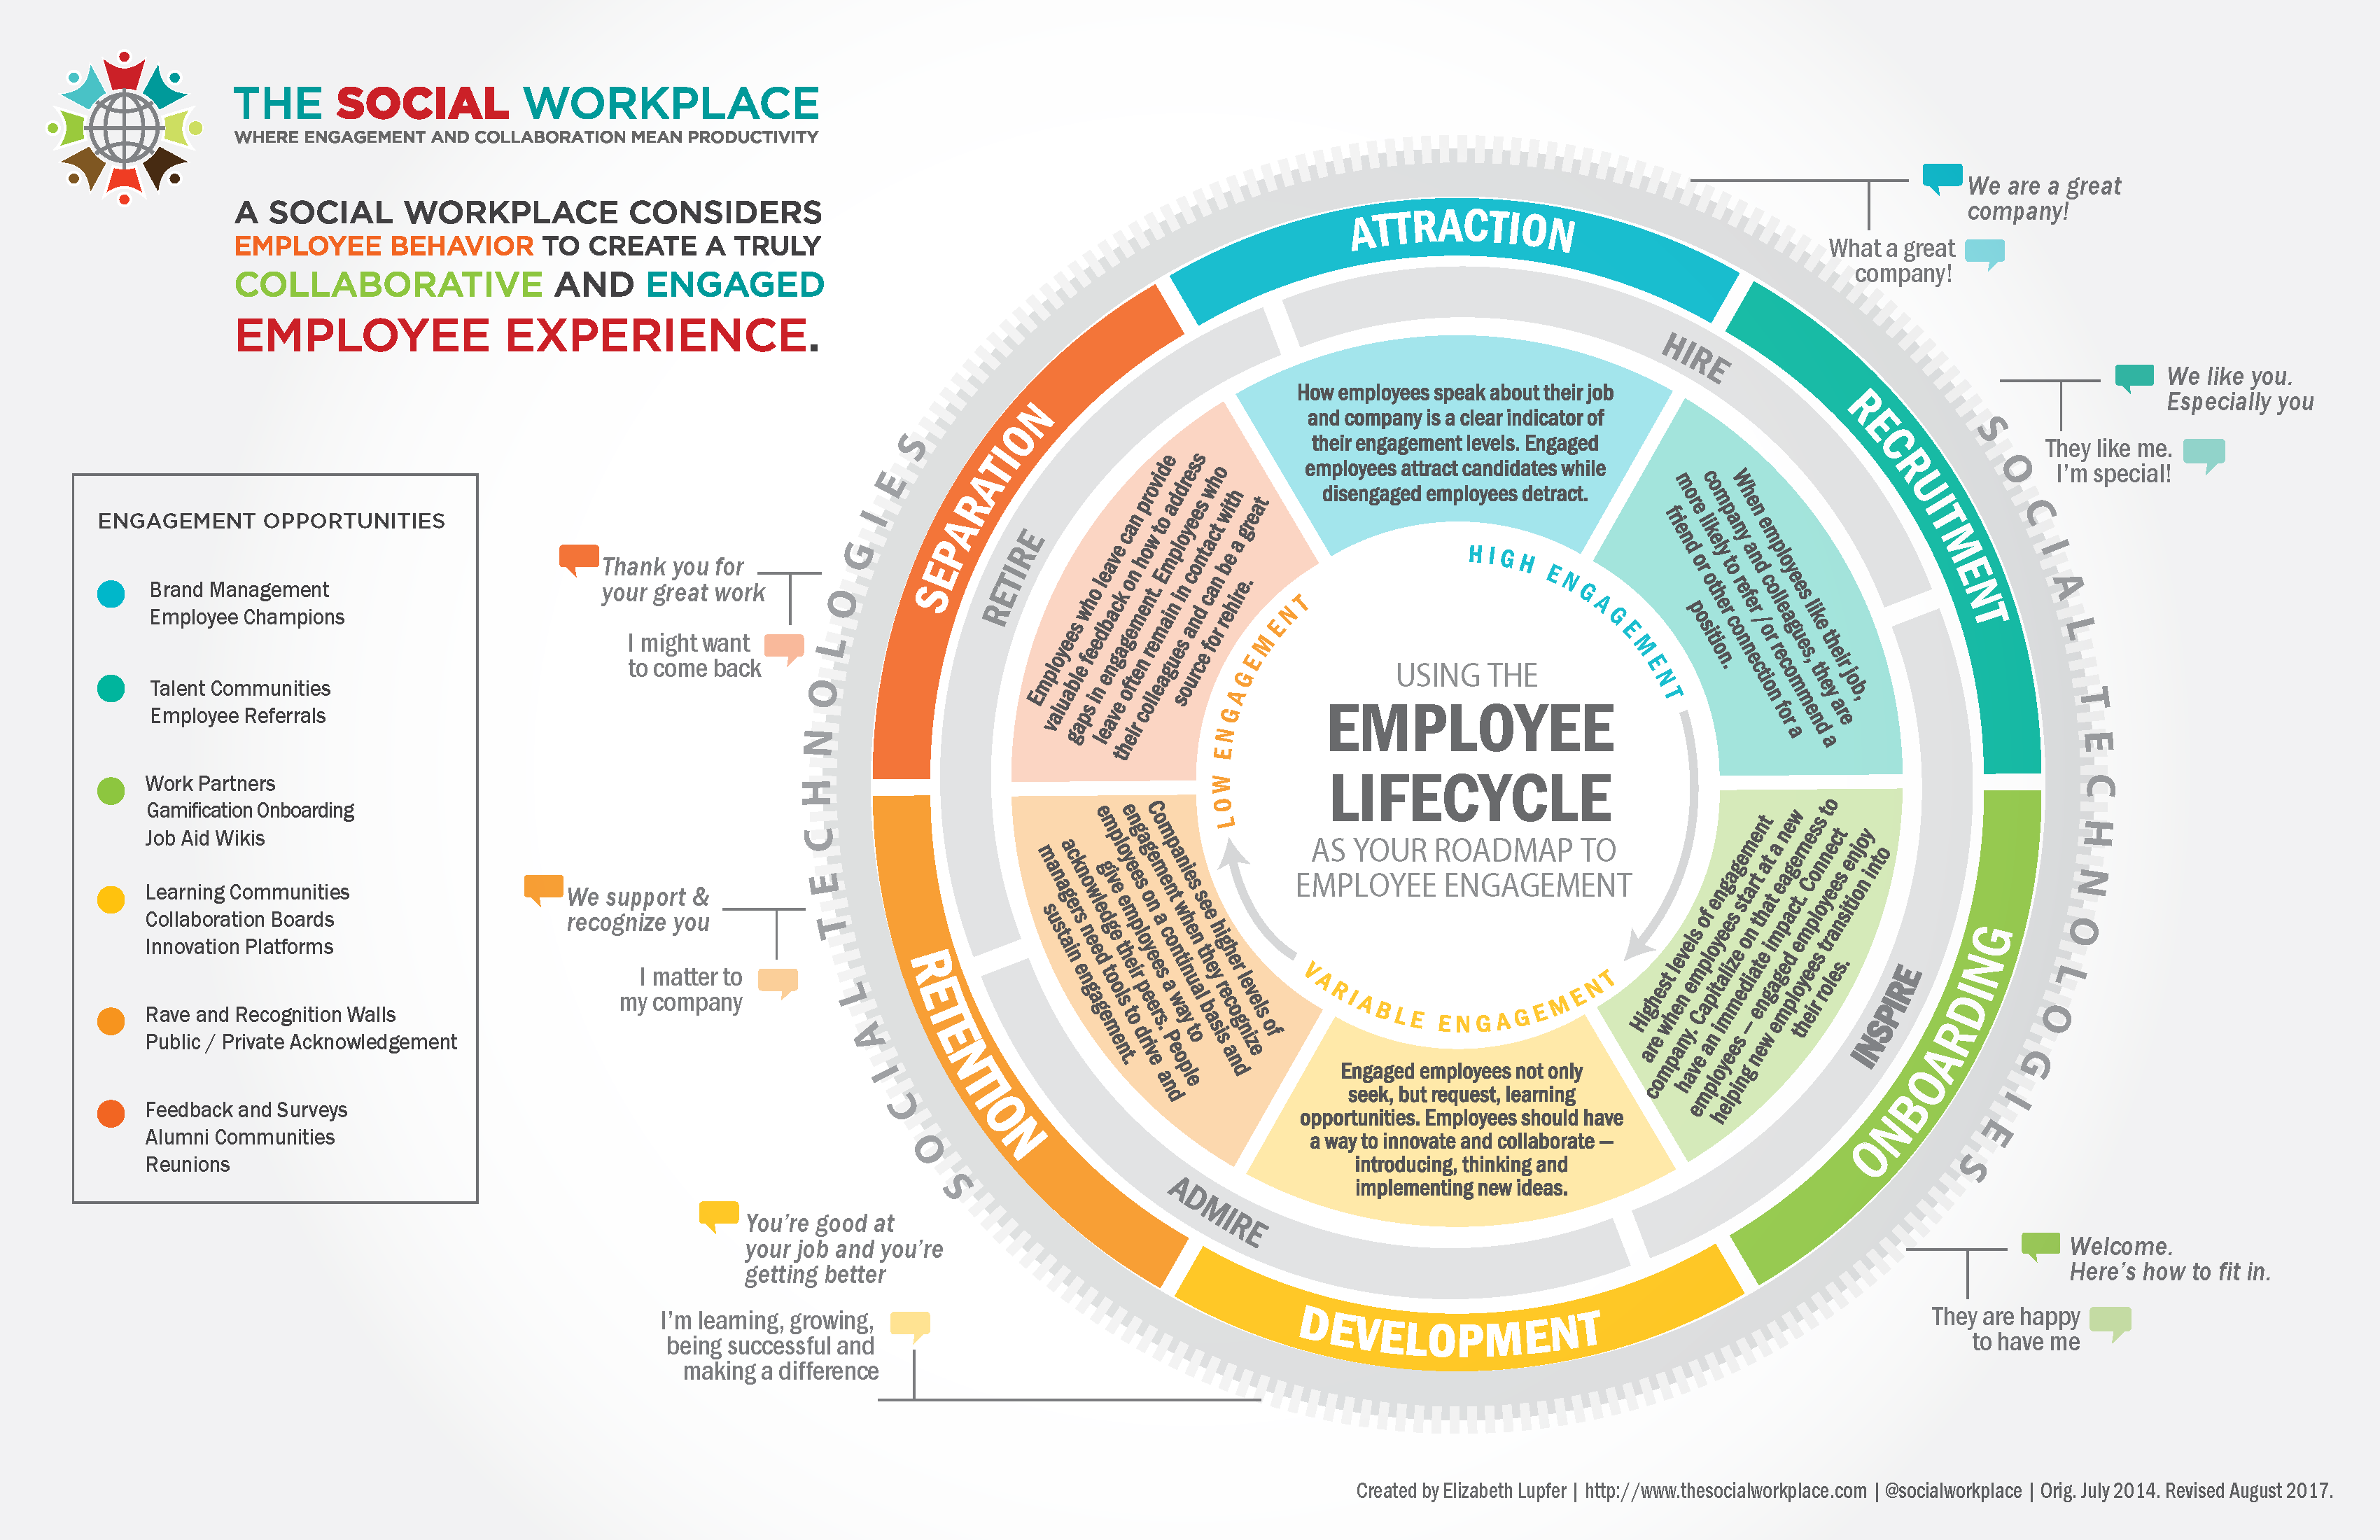 Where Engagement is Most Important in the Employee Lifecycle